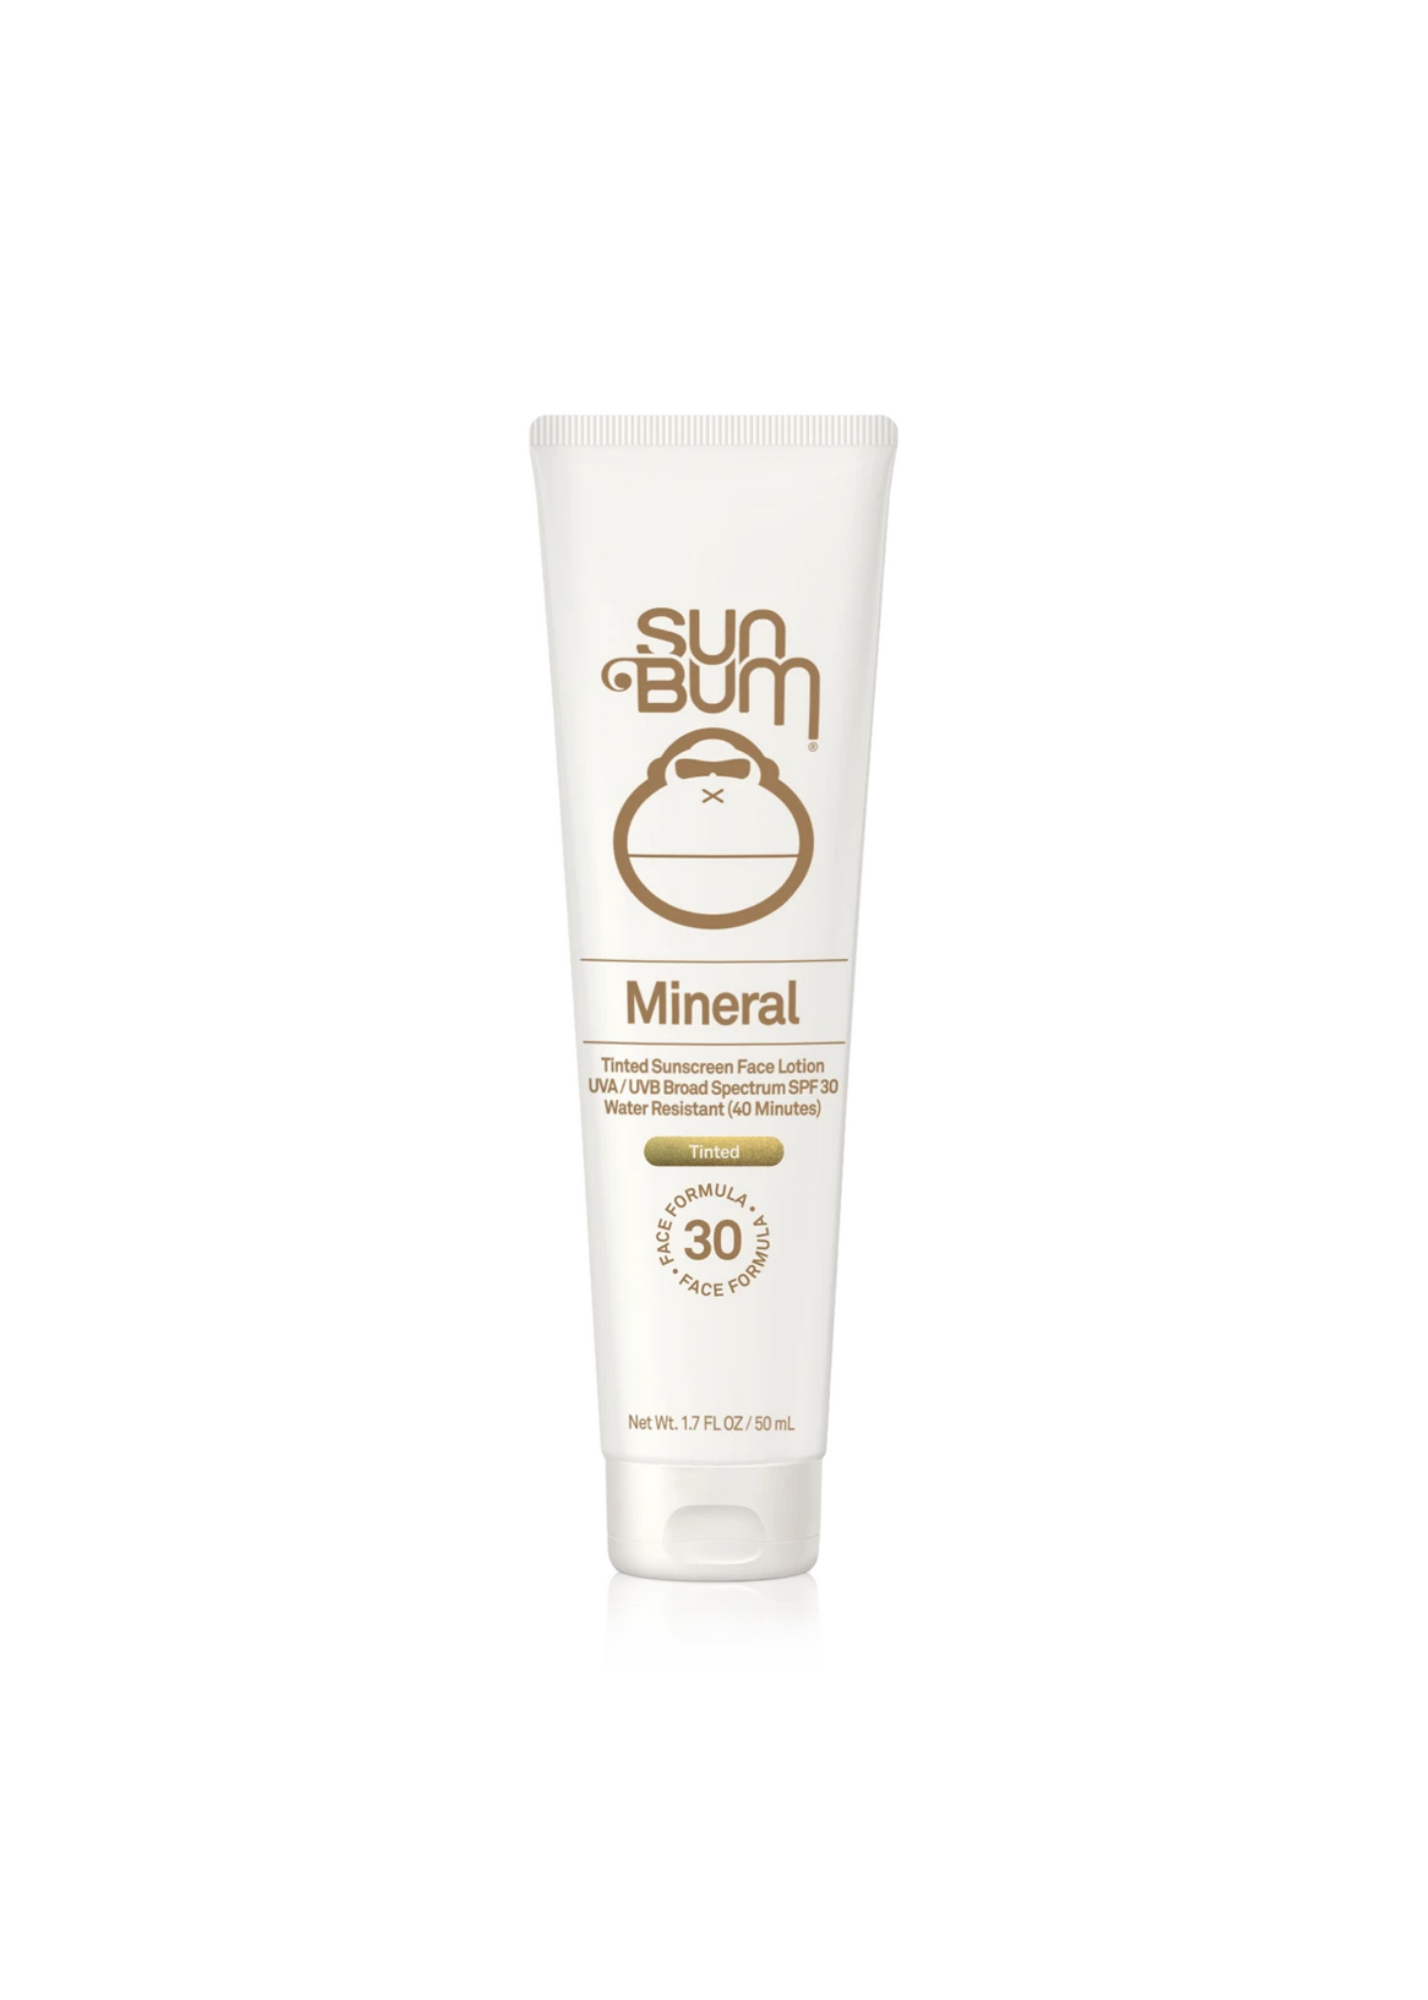 Mineral Tinted Sunscreen Face Lotion - SPF 30